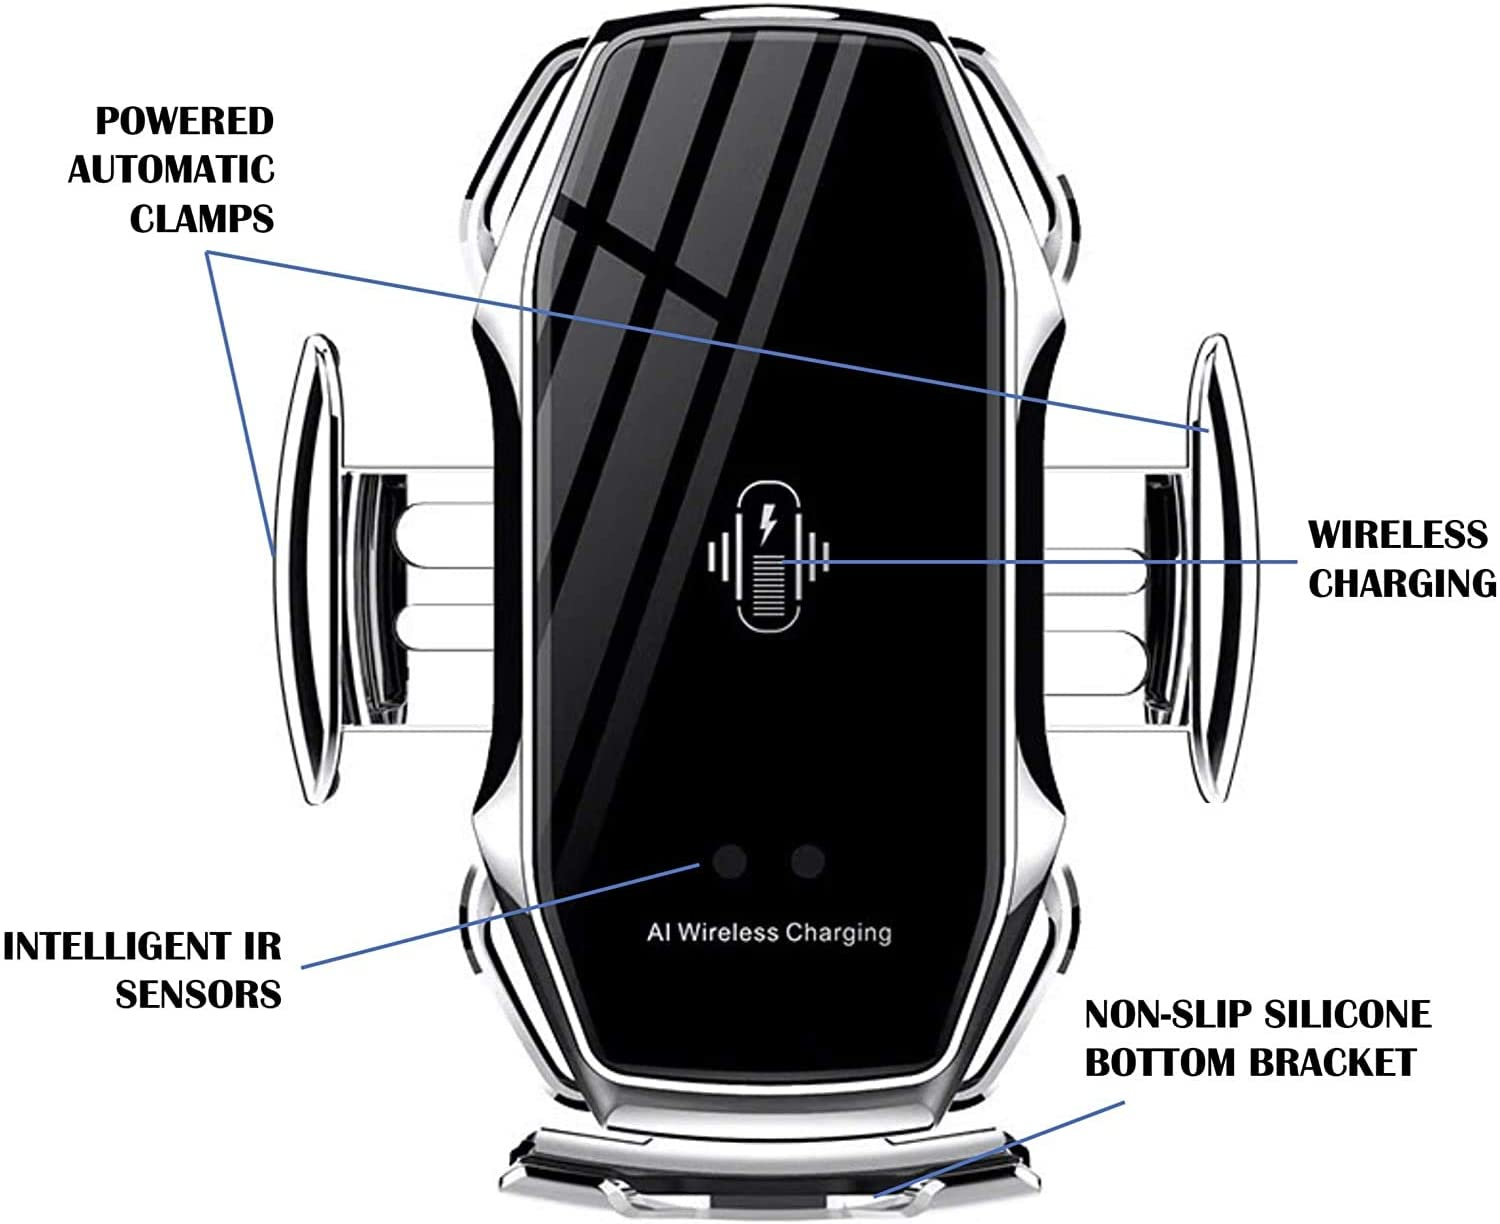 Silver Smart Sensor Wireless Car Charger New Model A5+,10W Qi Fast Charging etc. New Car Mount A5+ Wireless Charger Car Bracket Infrared Smart Sensor Charger for Samsung//Android//iPhone